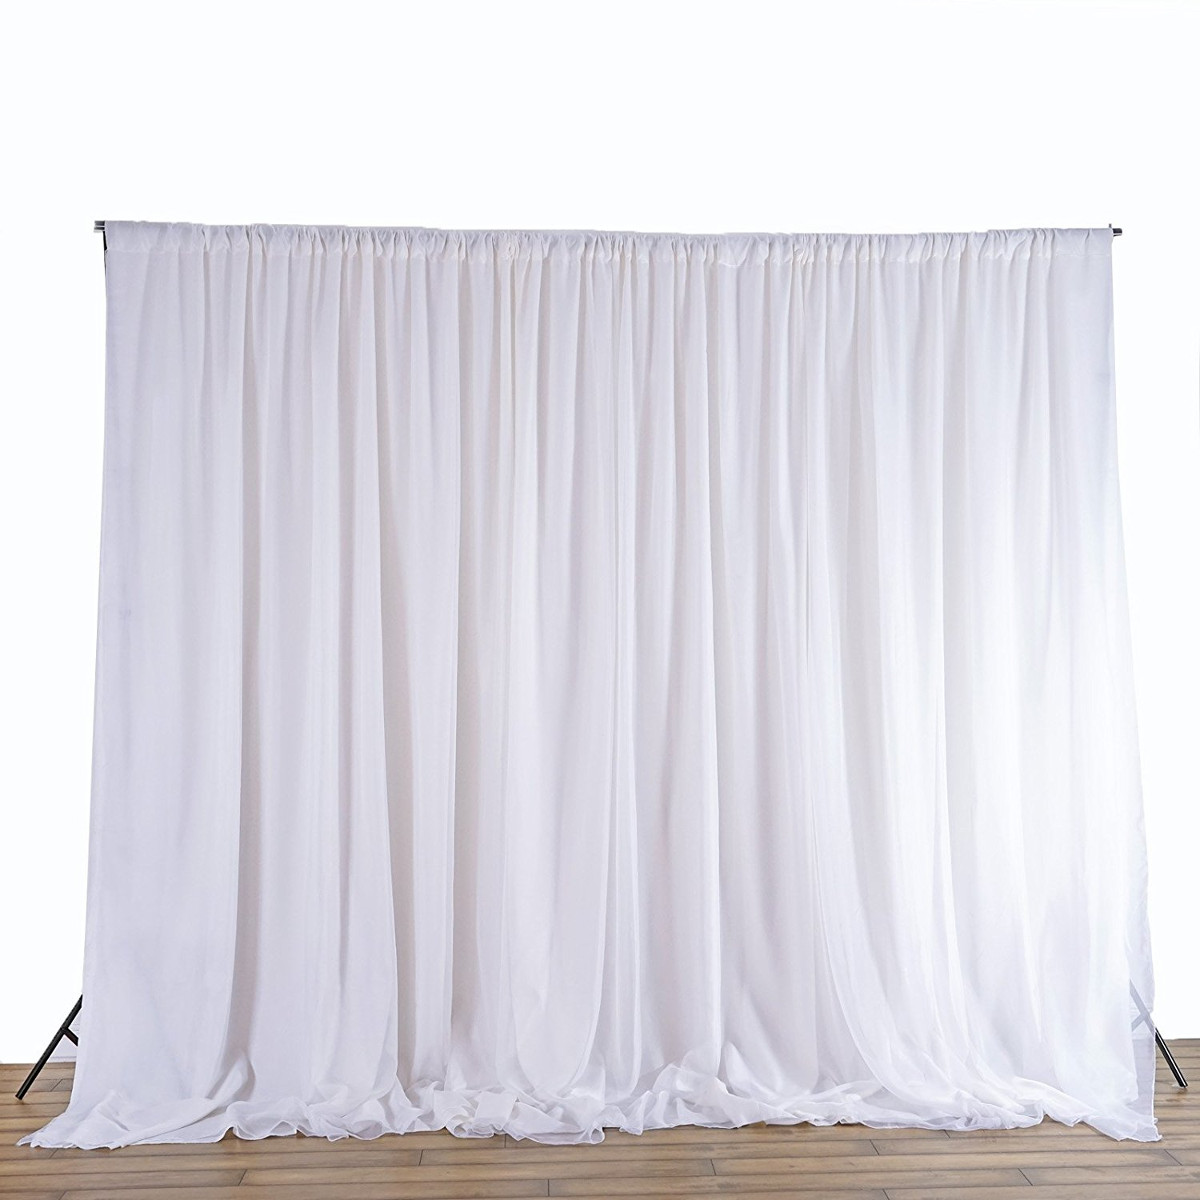 2.4M White Fabric Backdrop Drapes Curtains - Wedding Ceremony Event Party Photo Booth Home Windows